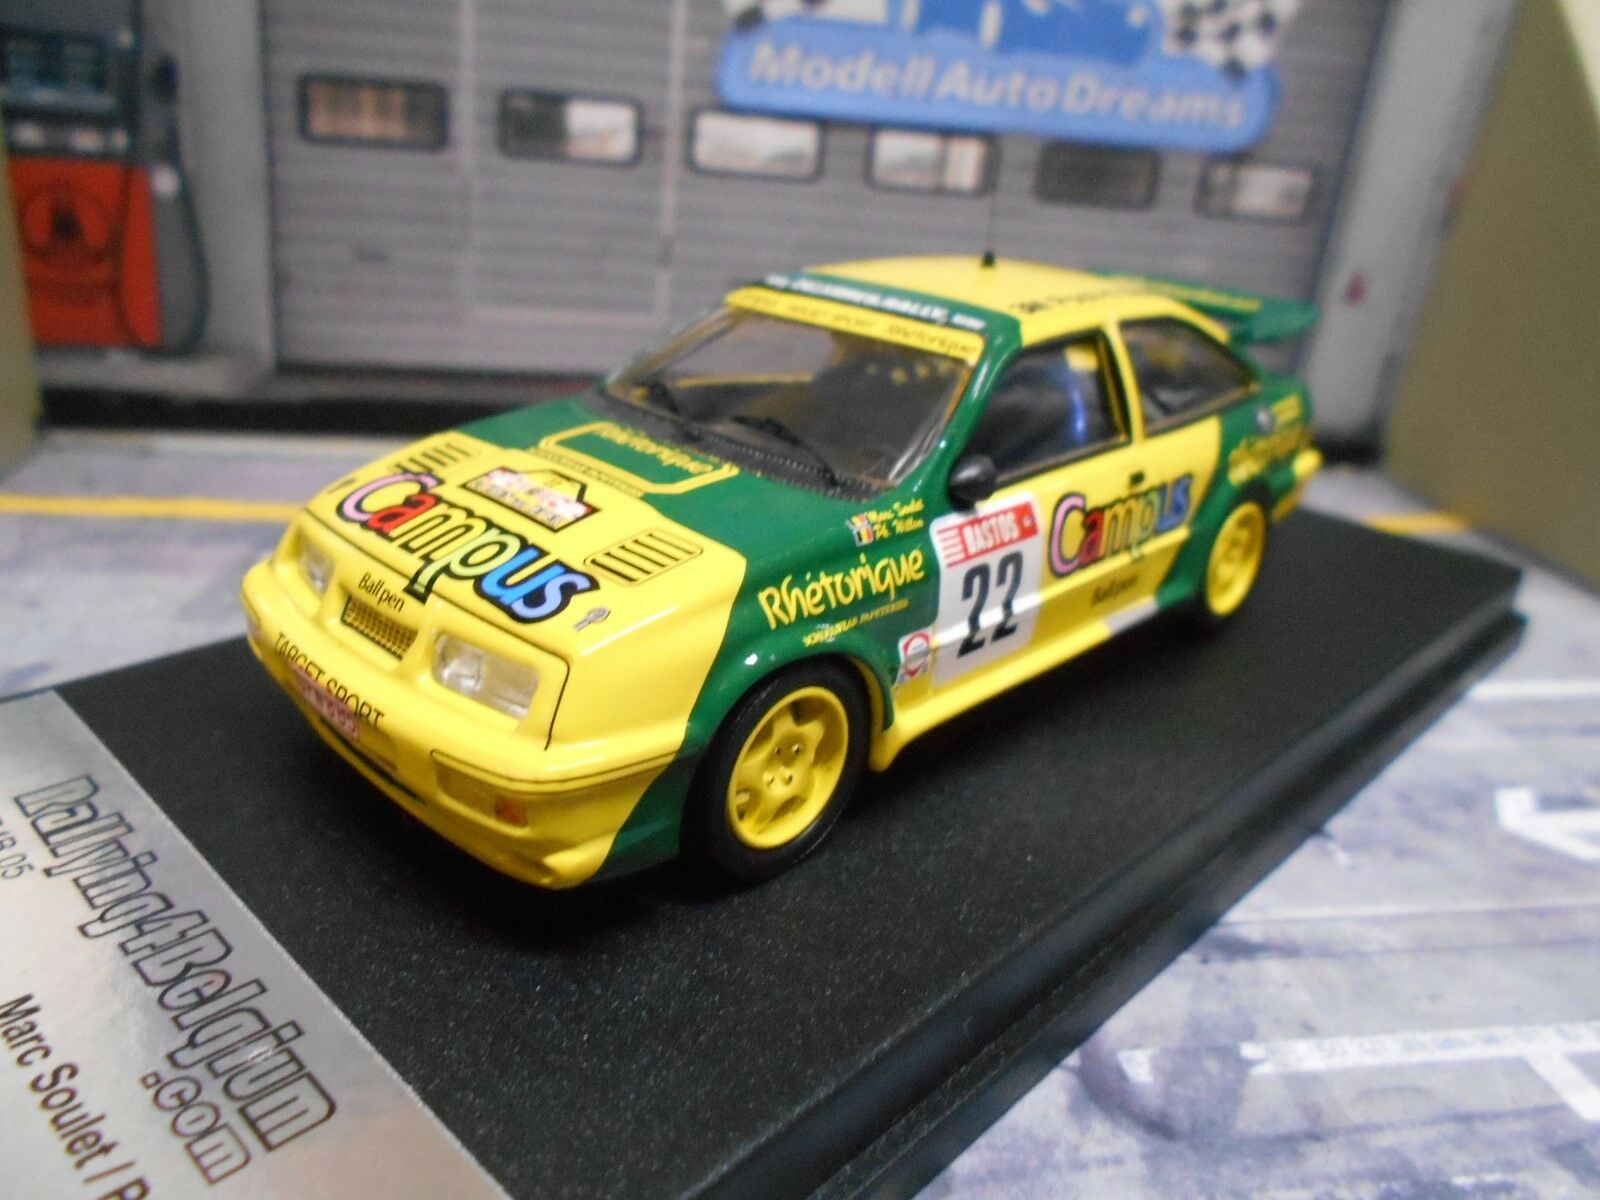 Ford Sierra Cosworth RS Rallye Soulet YPRES 1988  22 Campus Limit Edition 1 43